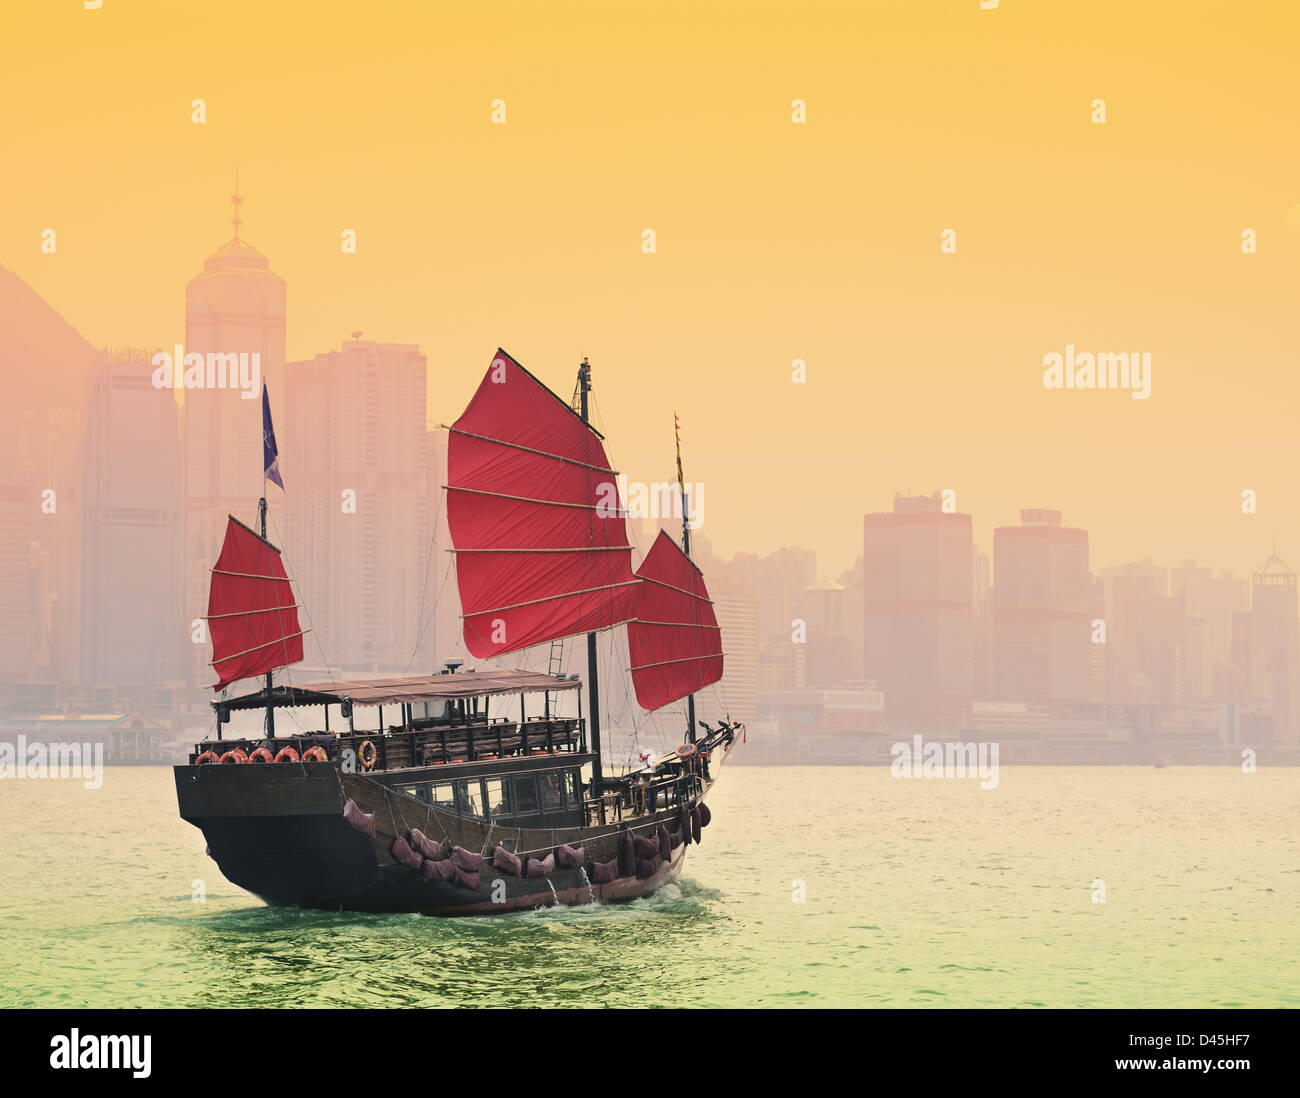 A traditional Junk sailing in Victoria Harbor in Hong Kong. - Stock Image